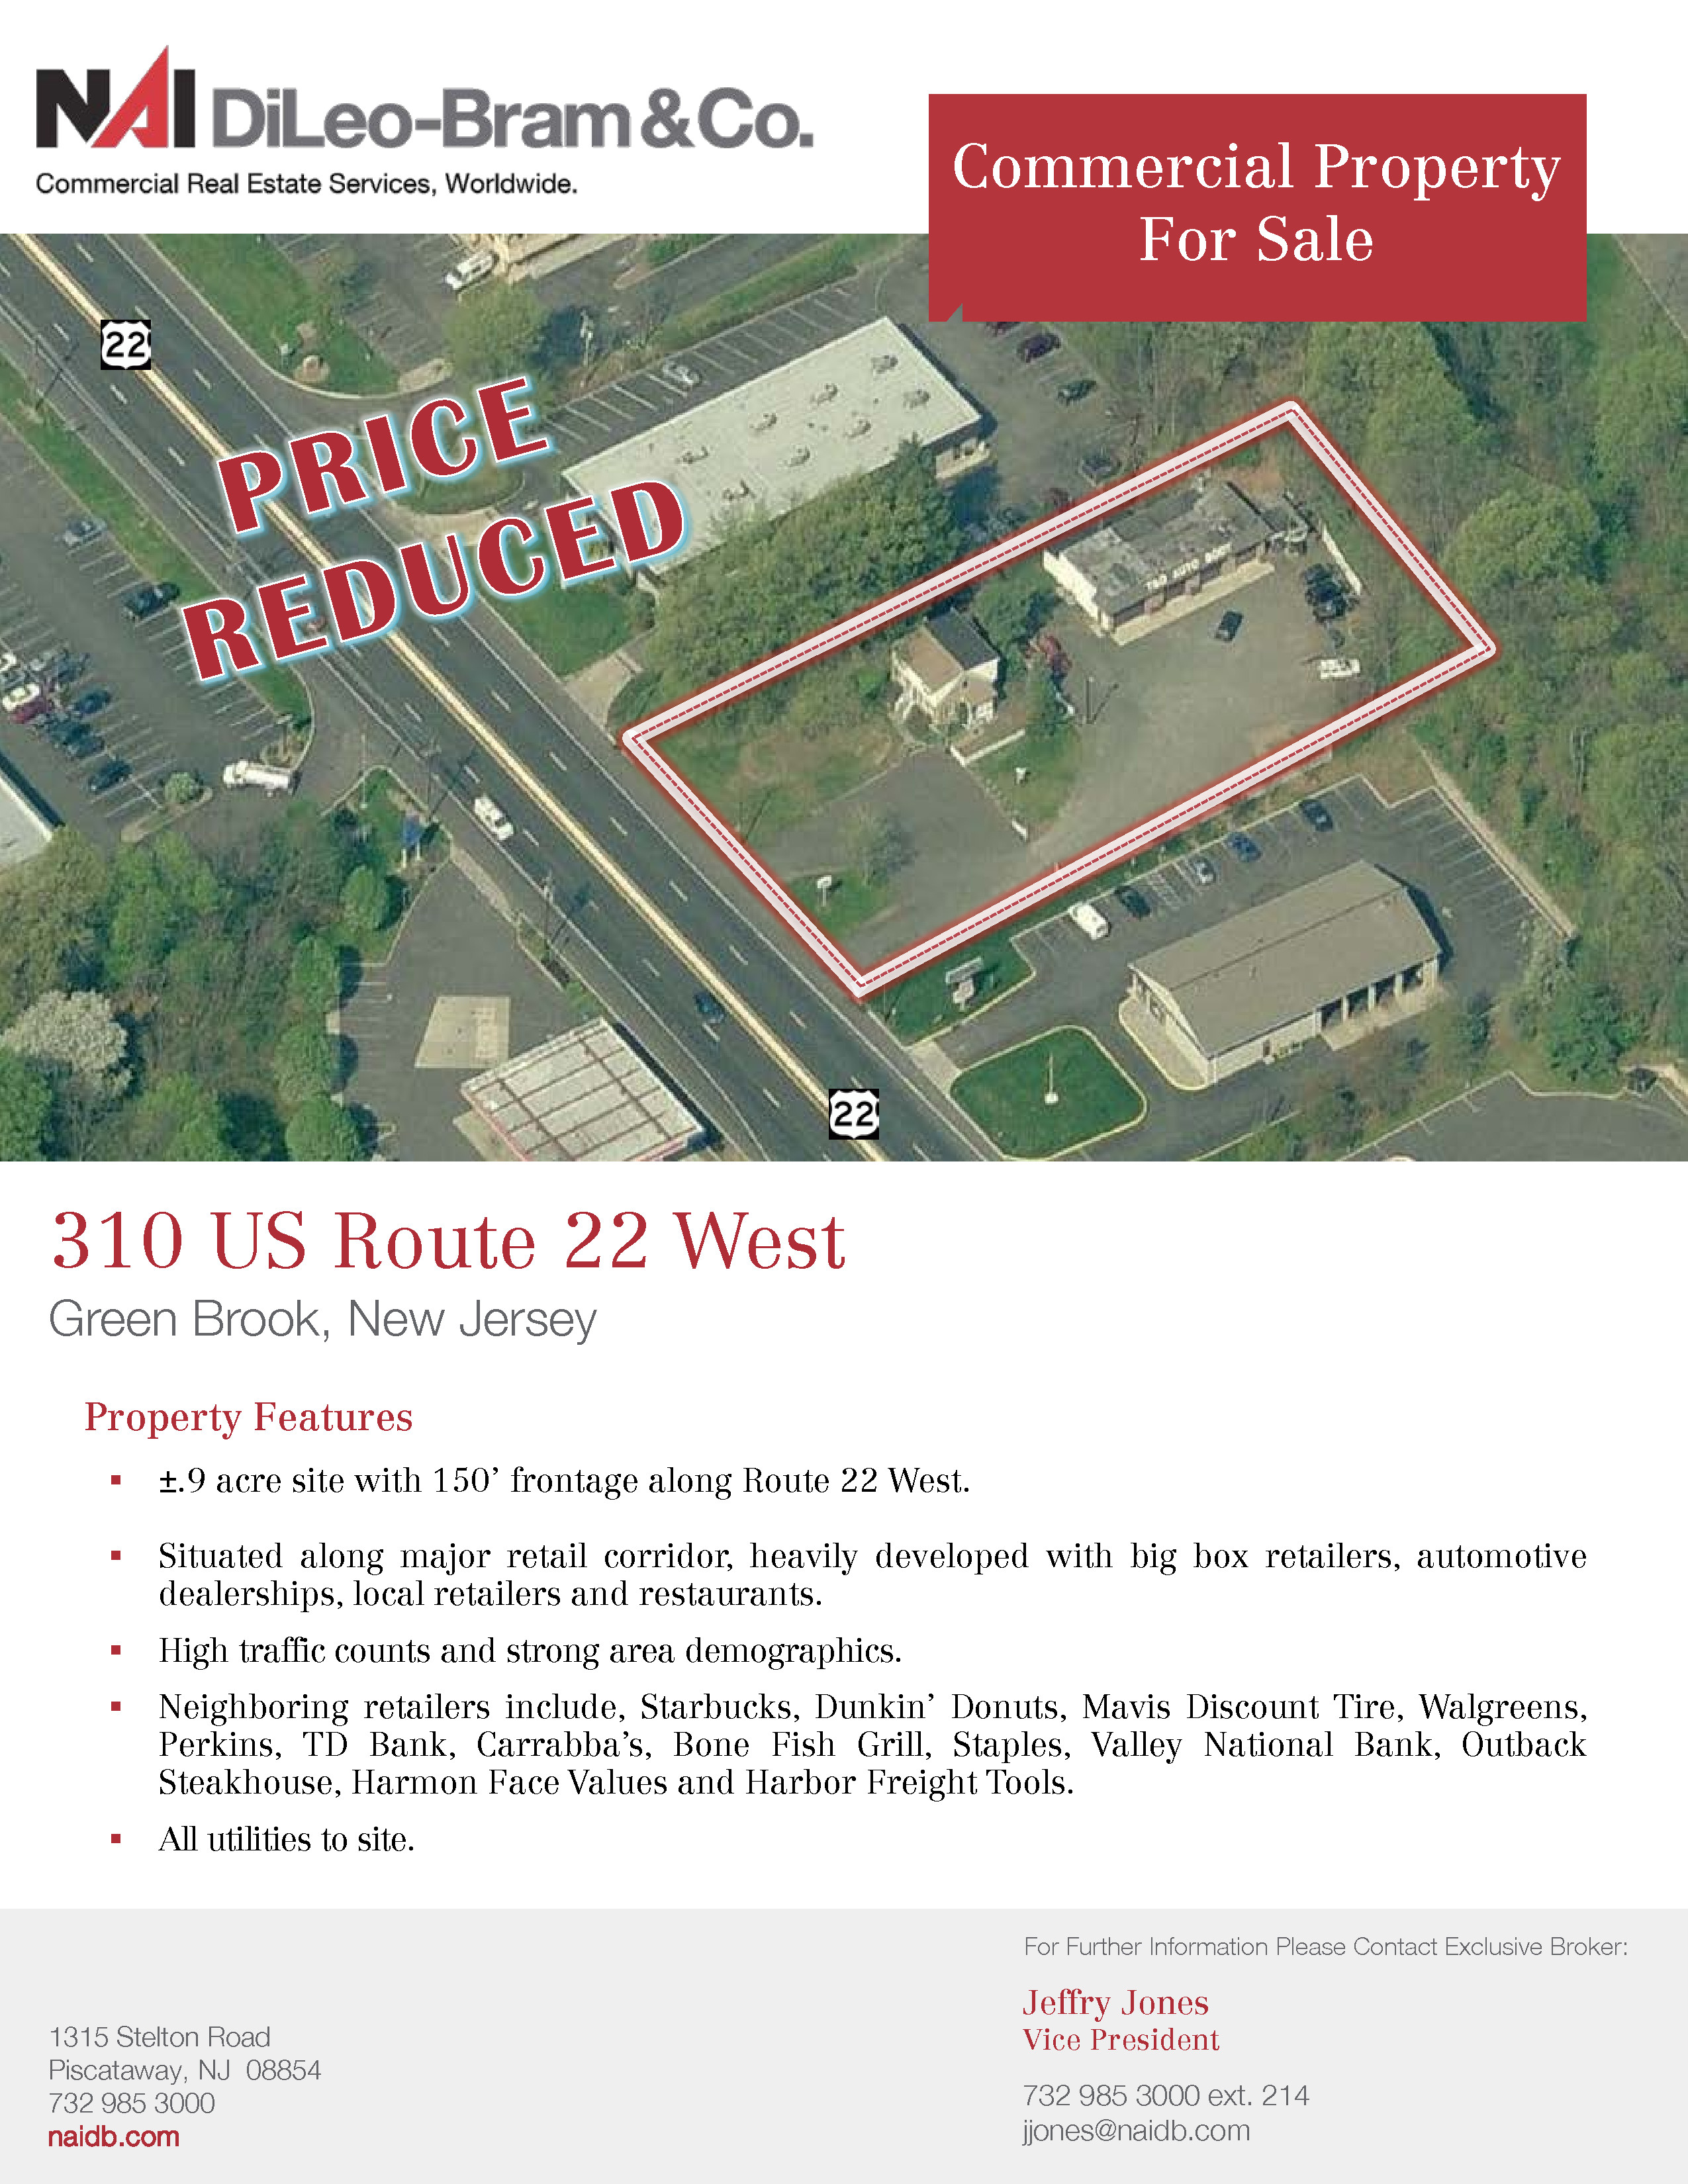 Green Brook Nj >> Commercial Property For Sale 310 Rt 22 West Green Brook Nj